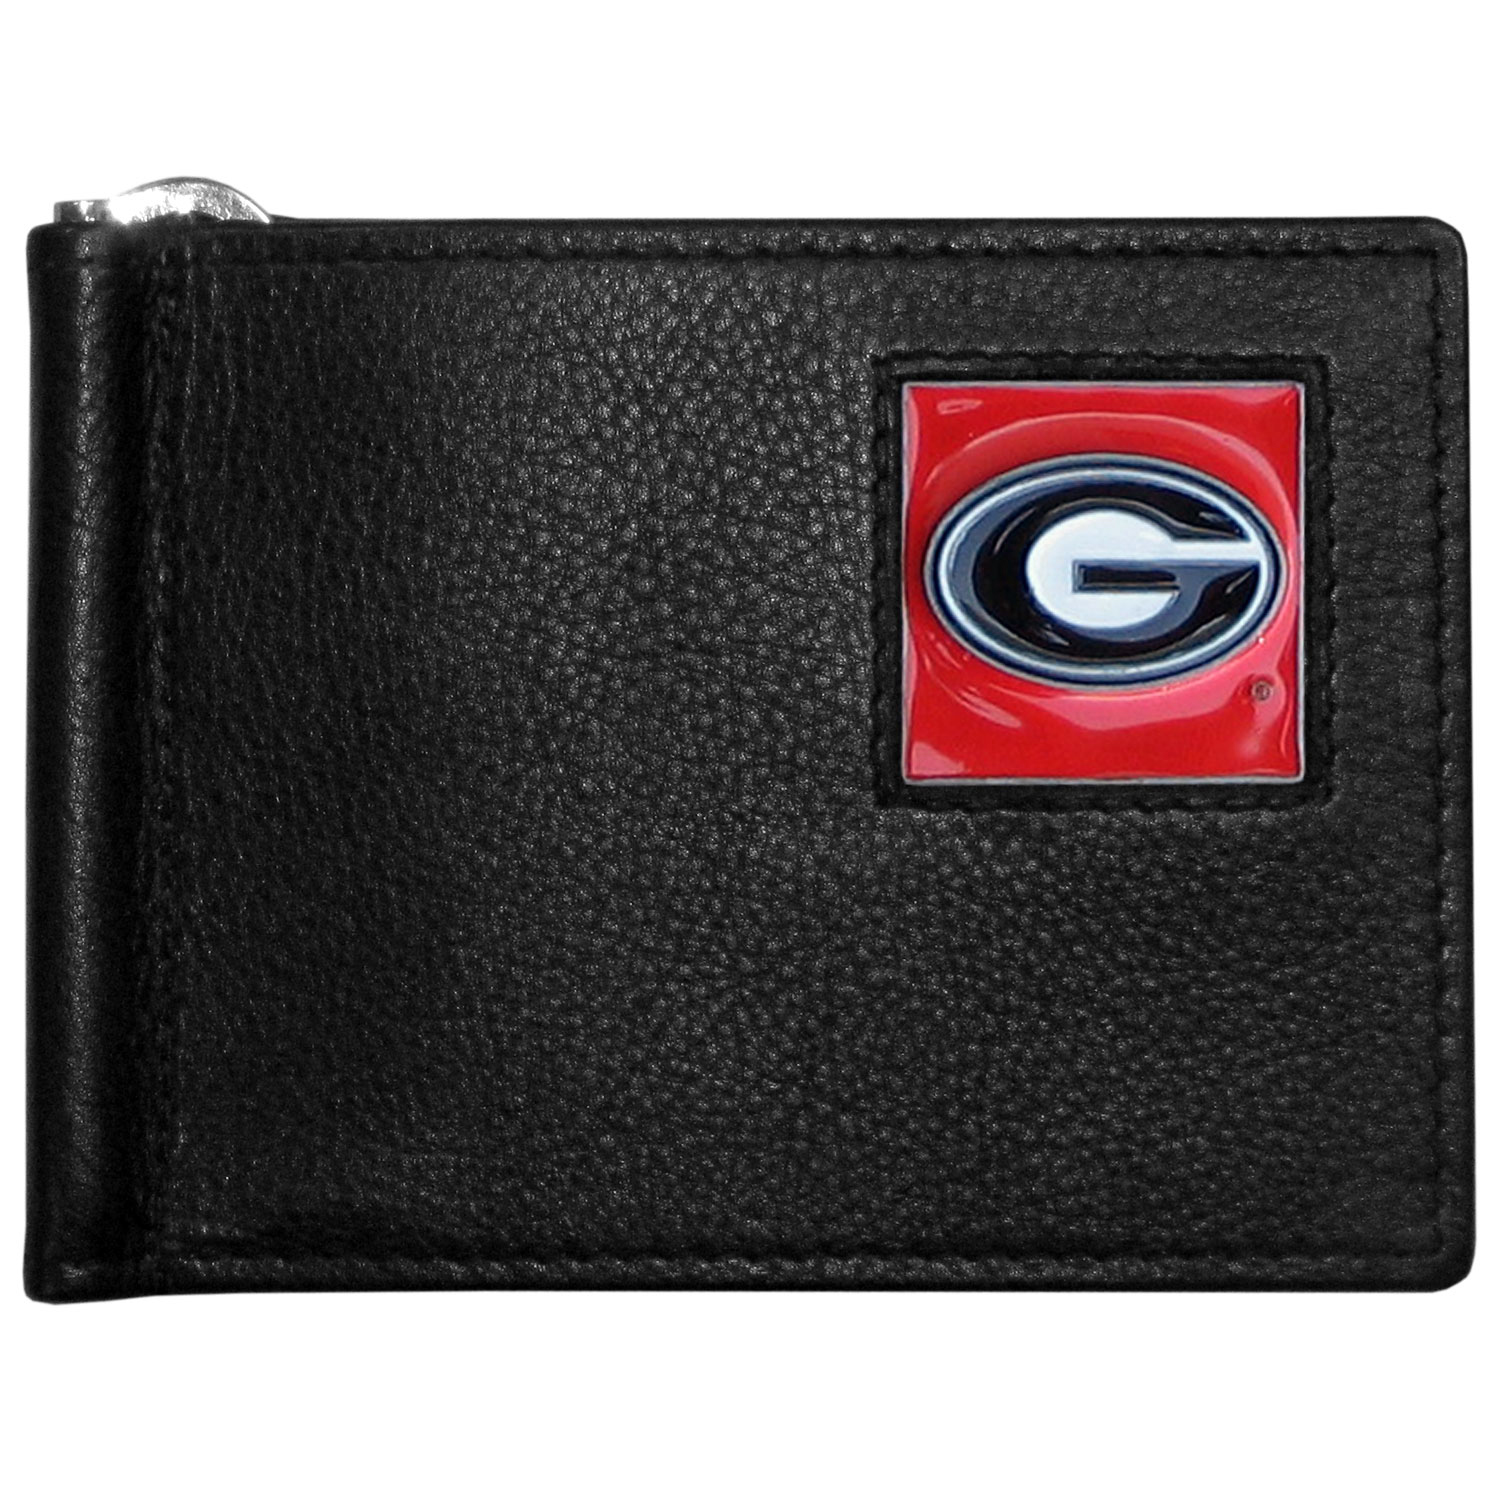 Georgia Bulldogs Leather Bill Clip Wallet - This cool new style wallet features an inner, metal bill clip that lips up for easy access. The super slim wallet holds tons of stuff with ample pockets, credit card slots & windowed ID slot. The wallet is made of genuine fine grain leather and it finished with a metal Georgia Bulldogs emblem. The wallet is shipped in gift box packaging.